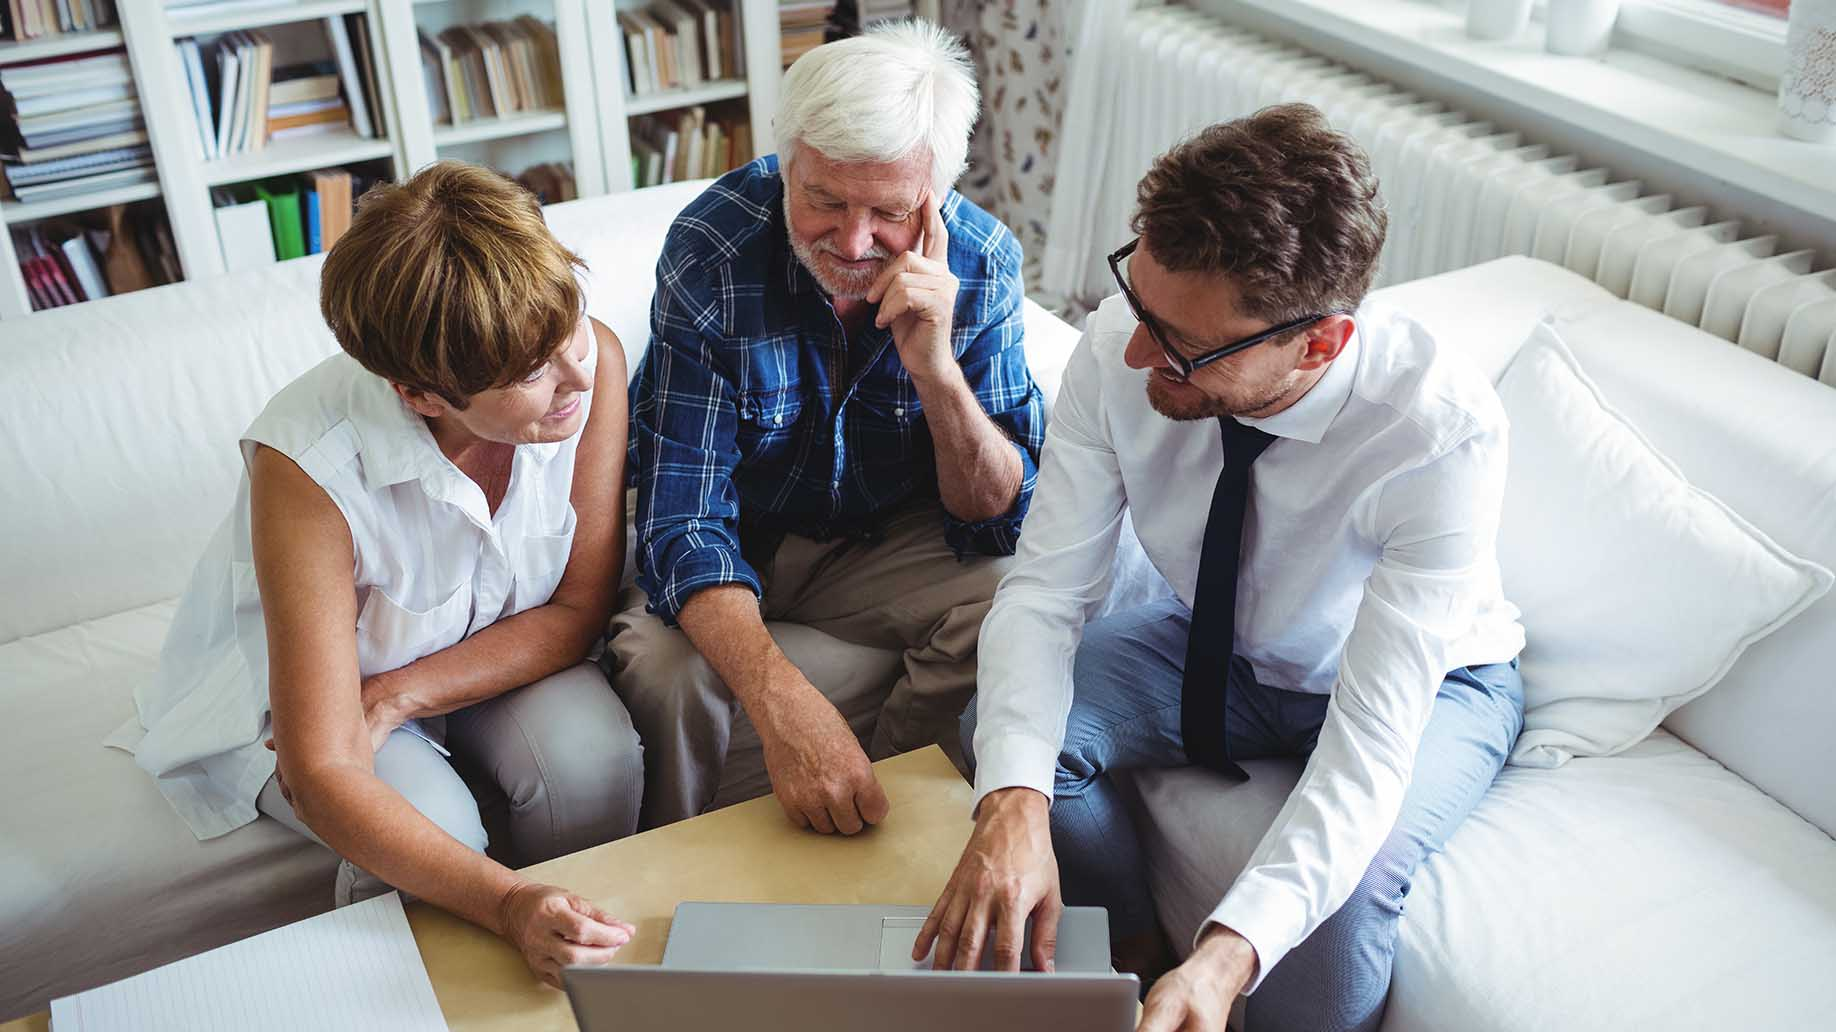 senior couple planning for financial investments with advisor